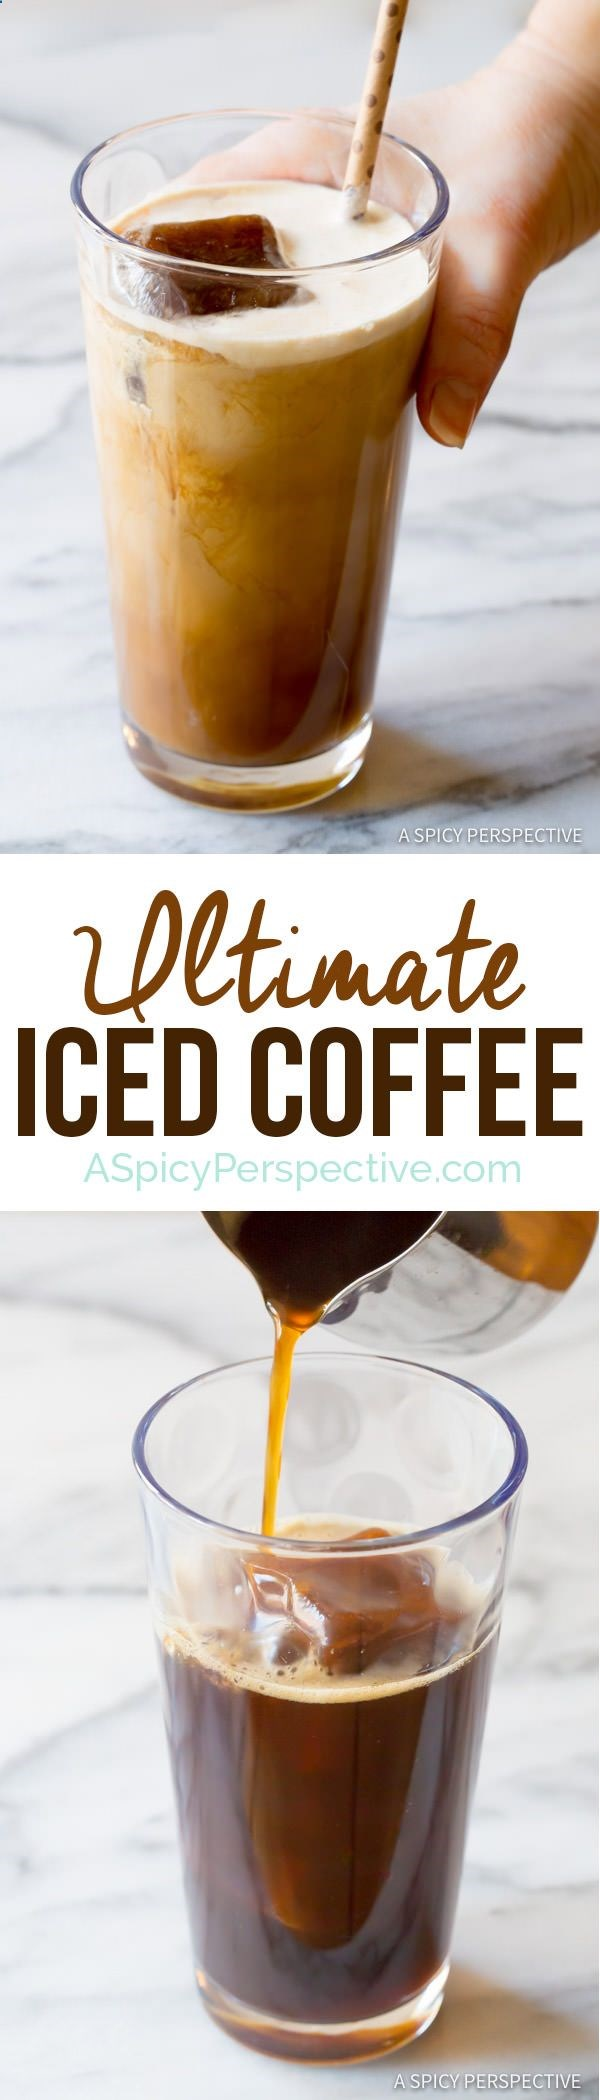 The Ultimate Iced Coffee Tips for making the BEST iced